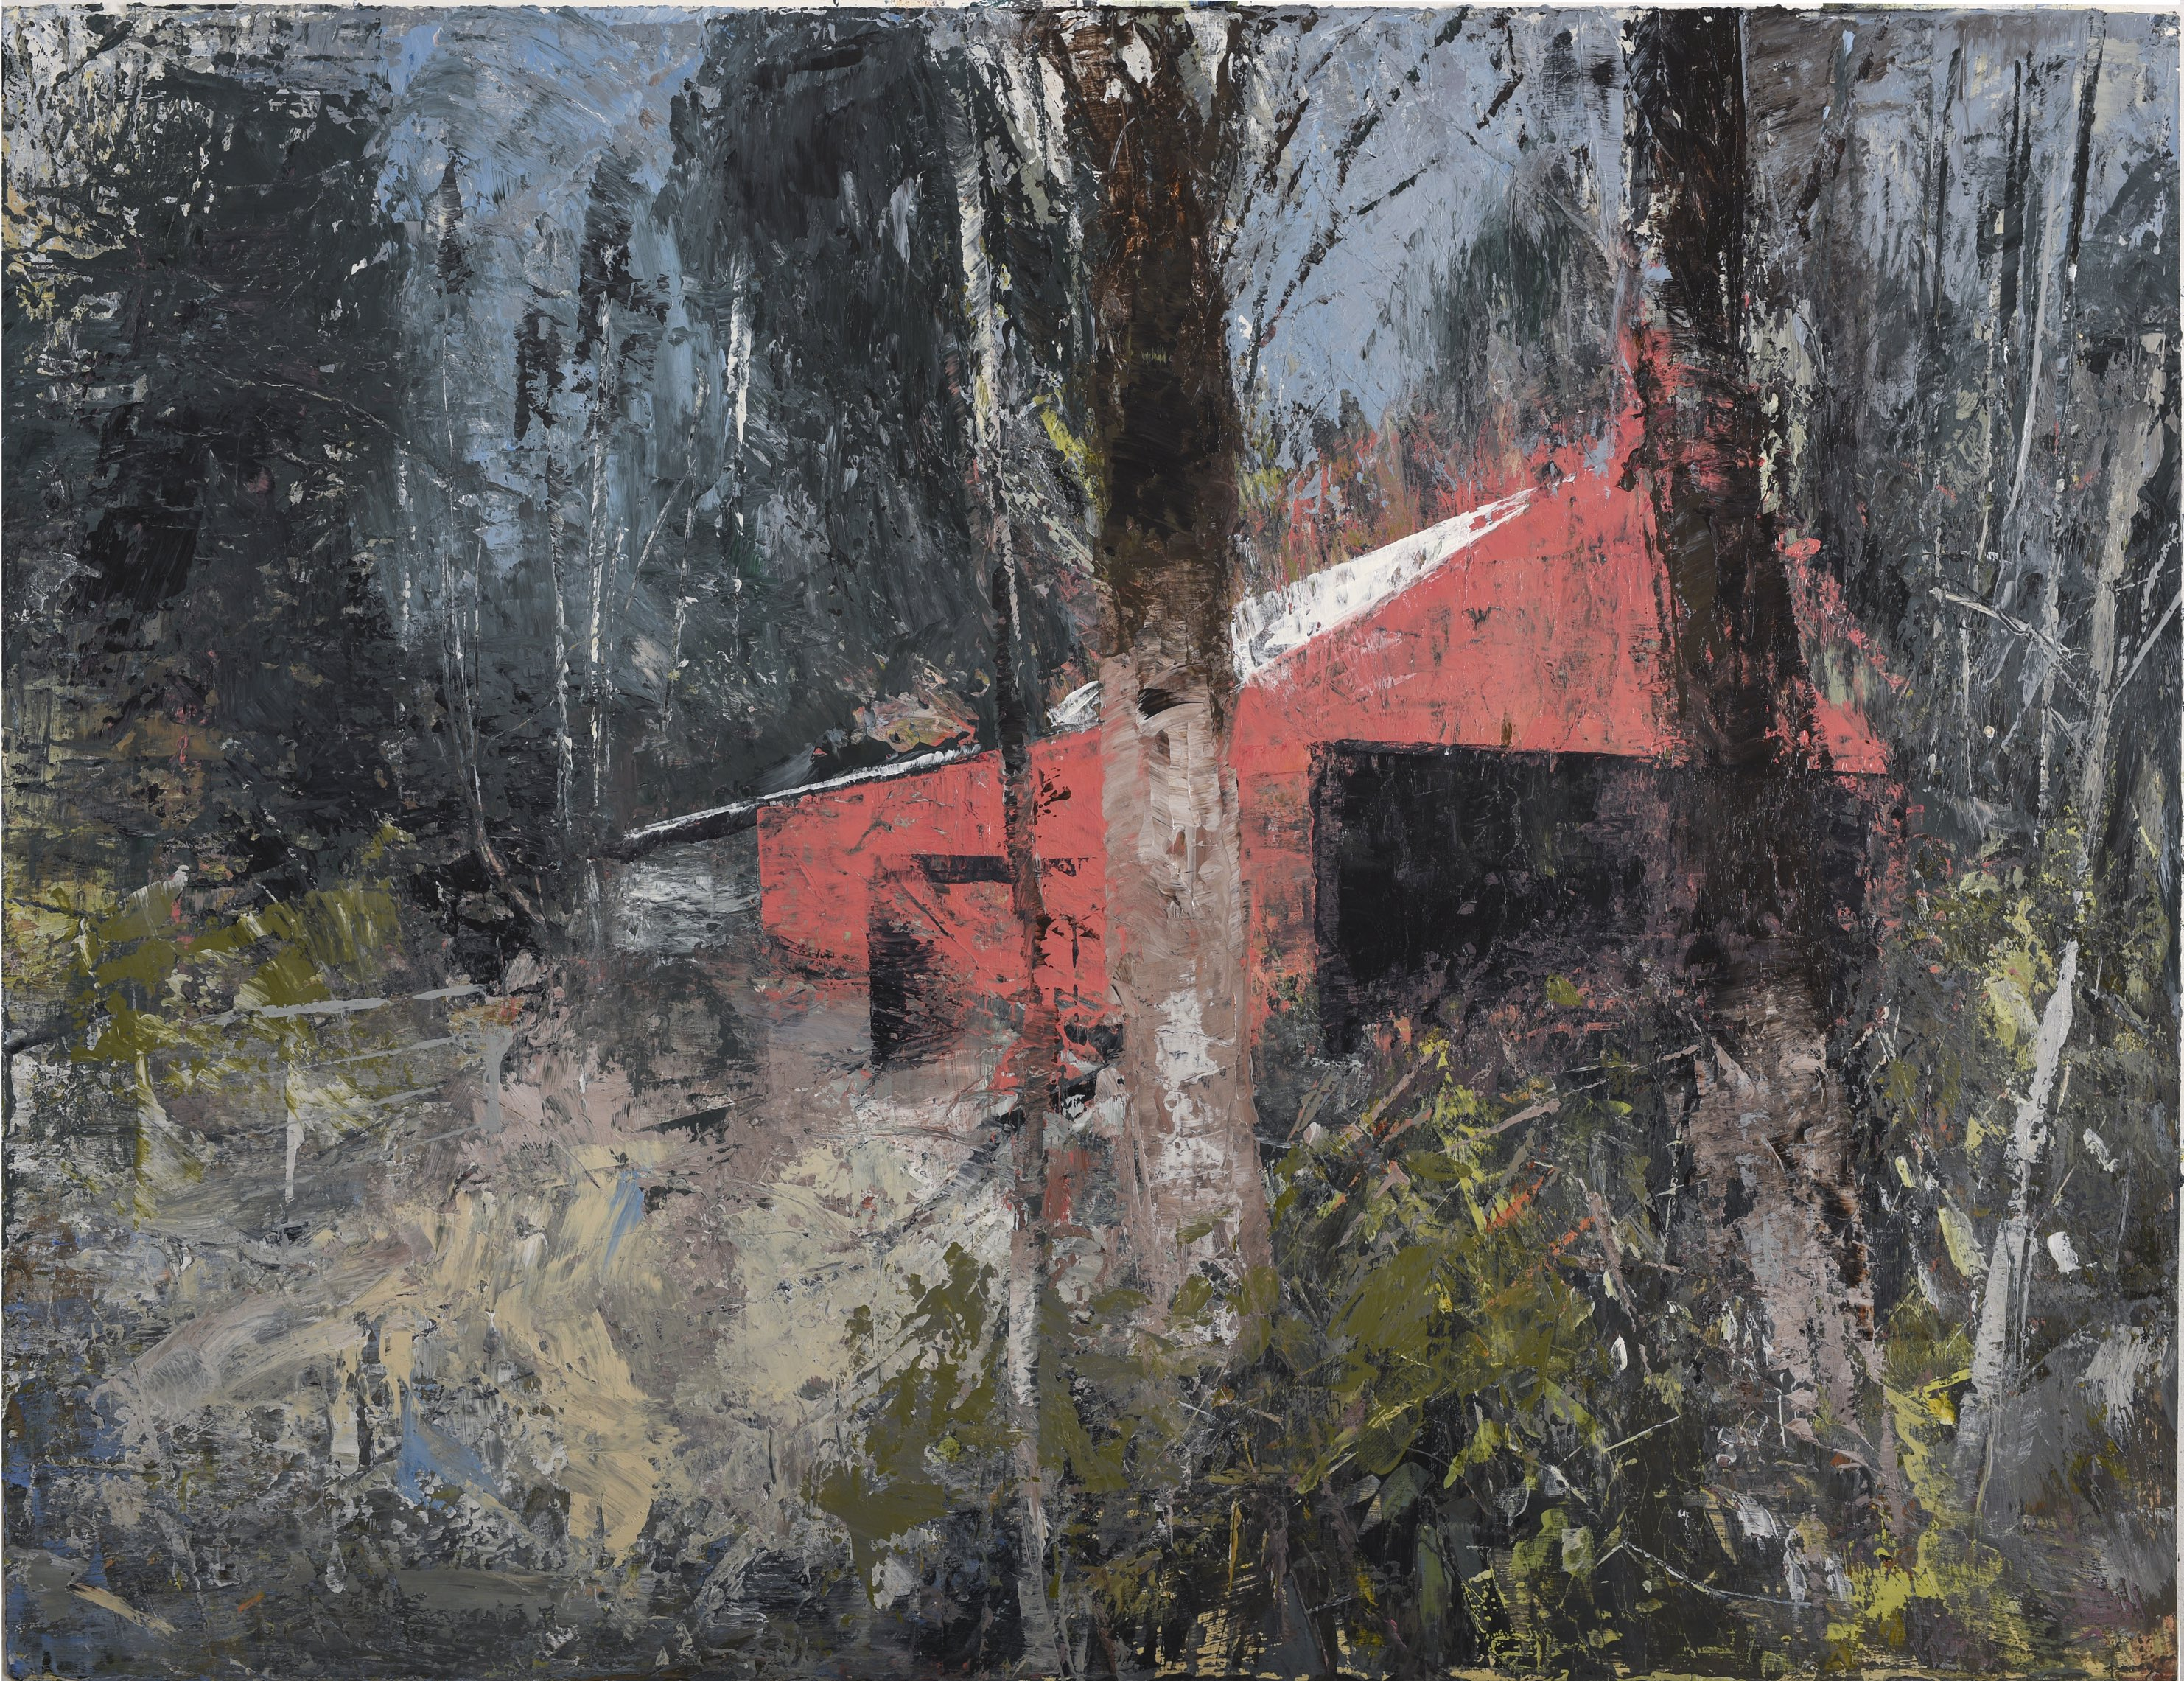 The Lee Valley, Barn 2016 acrylic on paper  30 x 40 inches